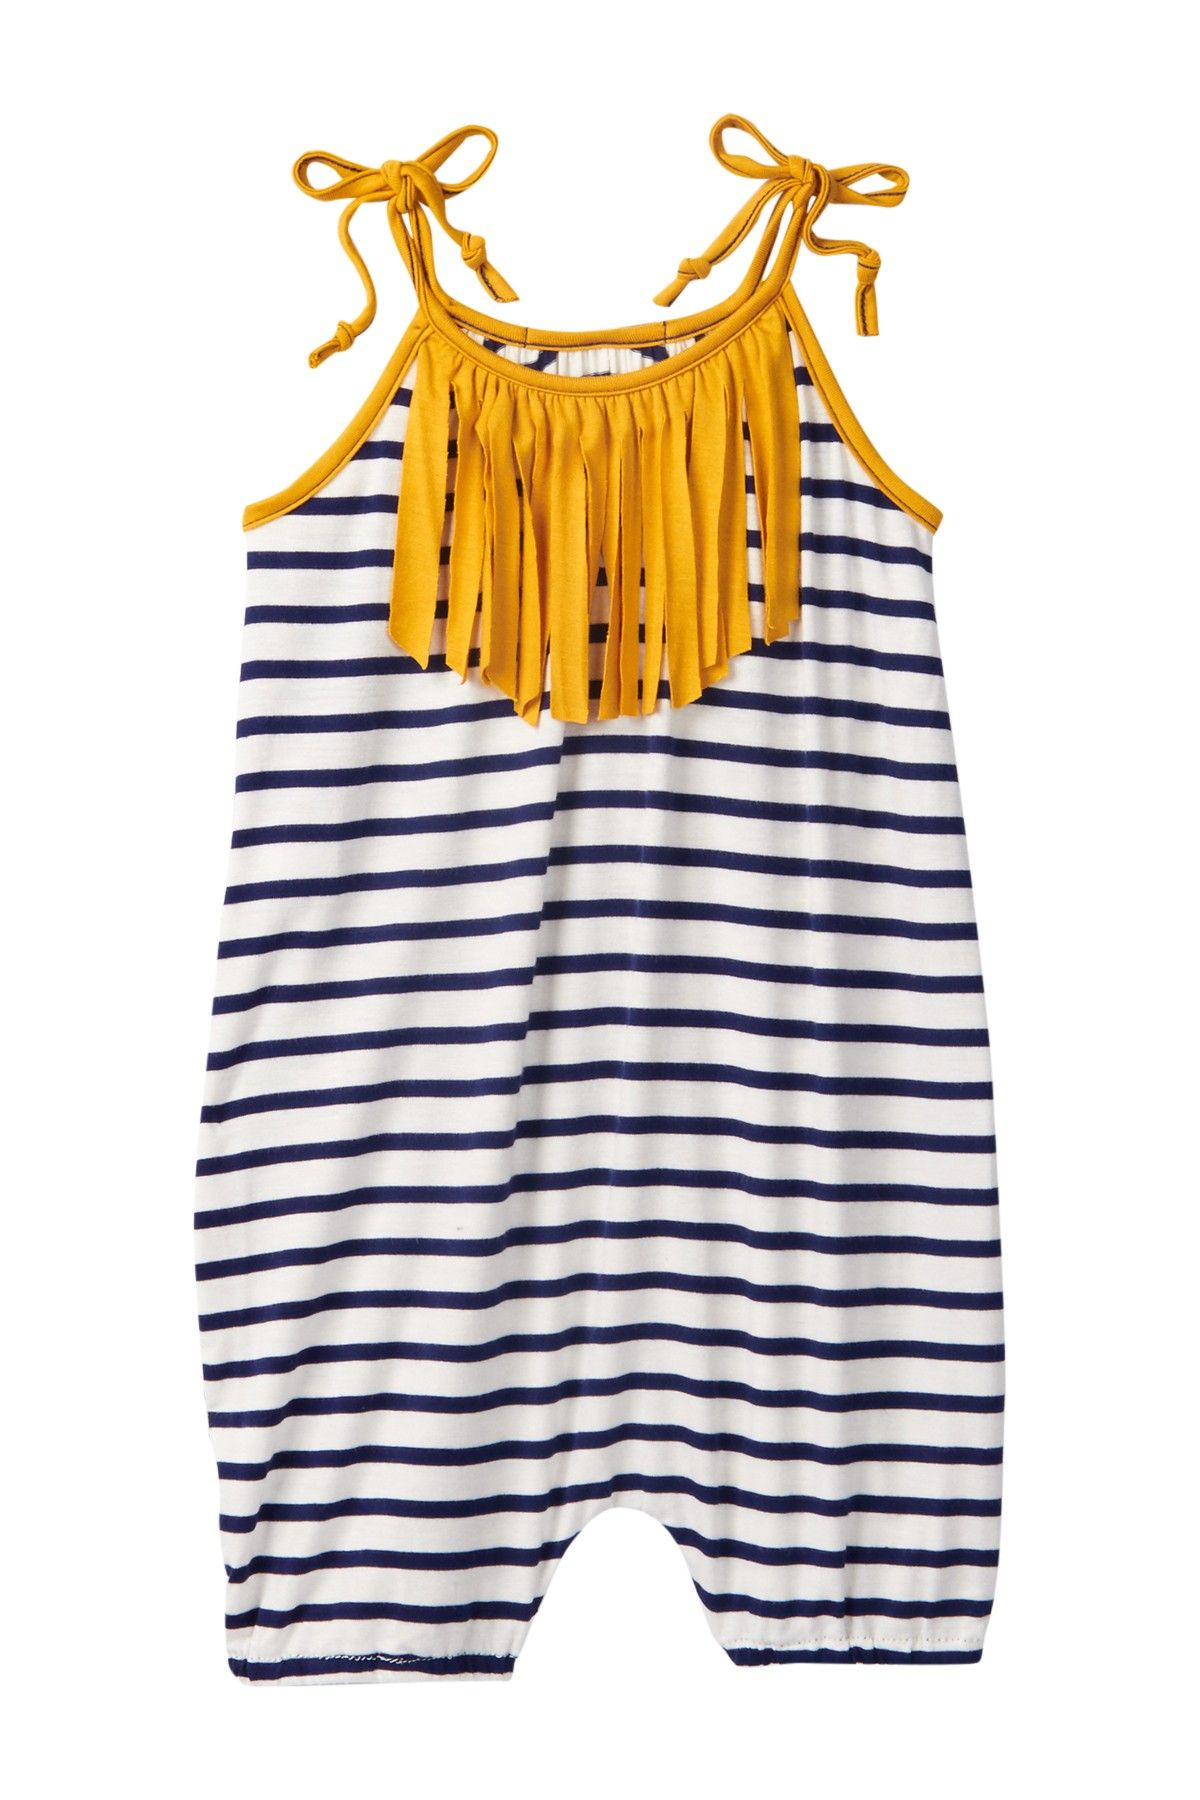 This Navy Striped & Mustard Fringe Bubble Romper is the perfect